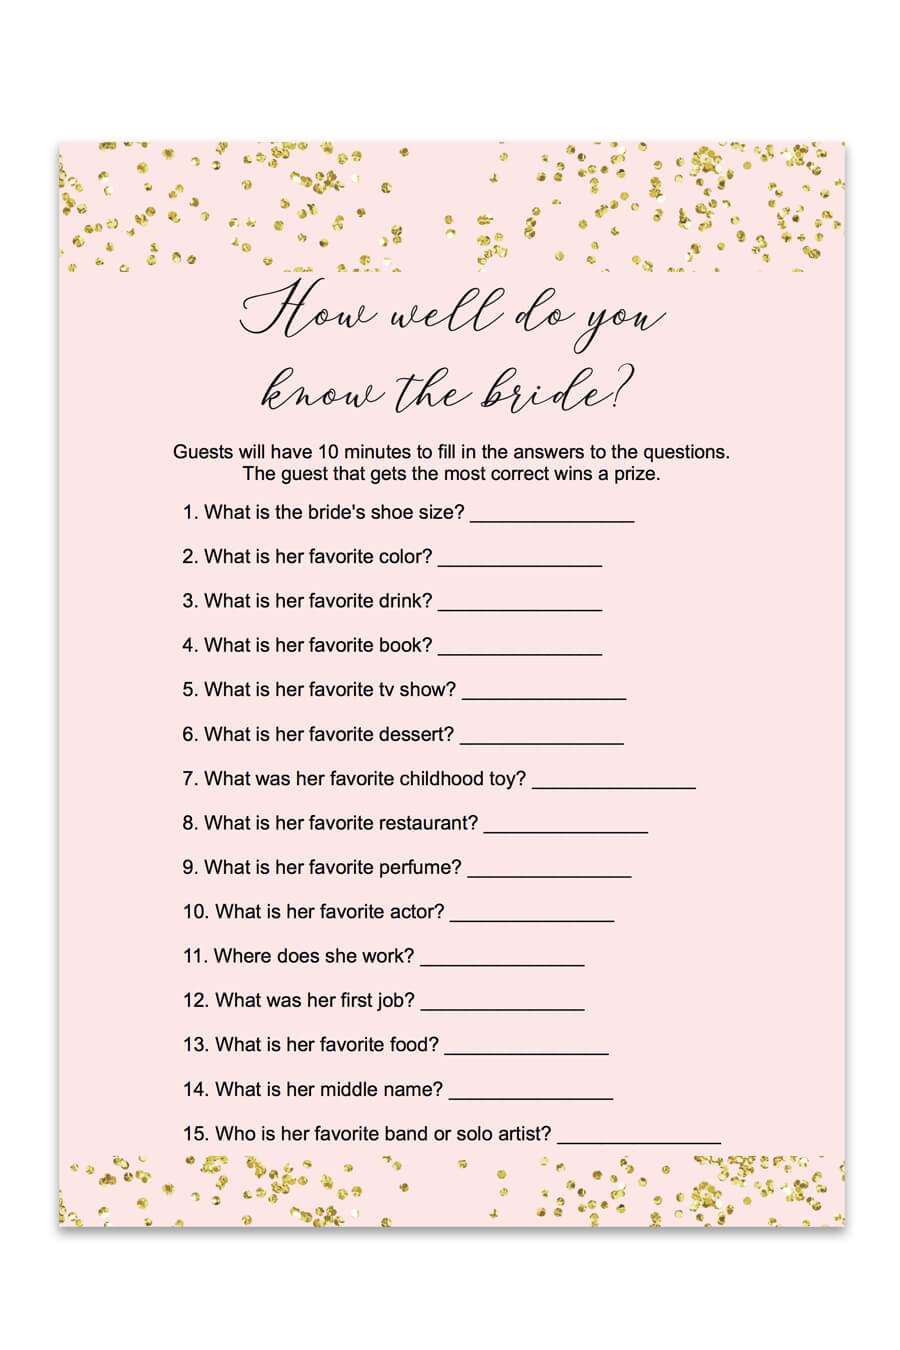 Blush And Confetti How Well Do You Know The Bride Game - Chicfetti - How Well Do You Know The Bride Free Printable